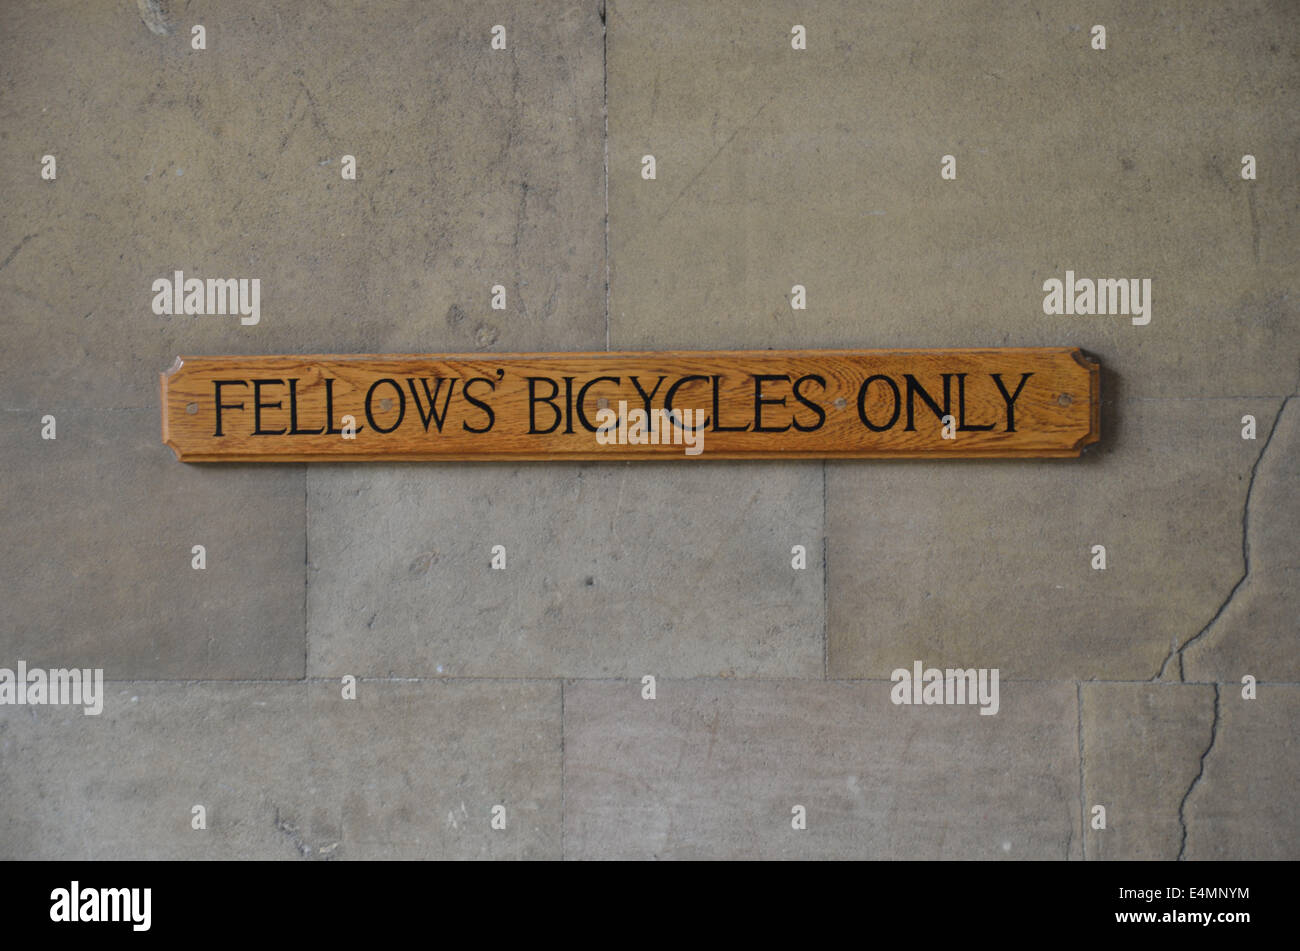 Fellows Bicyles only - Stock Image